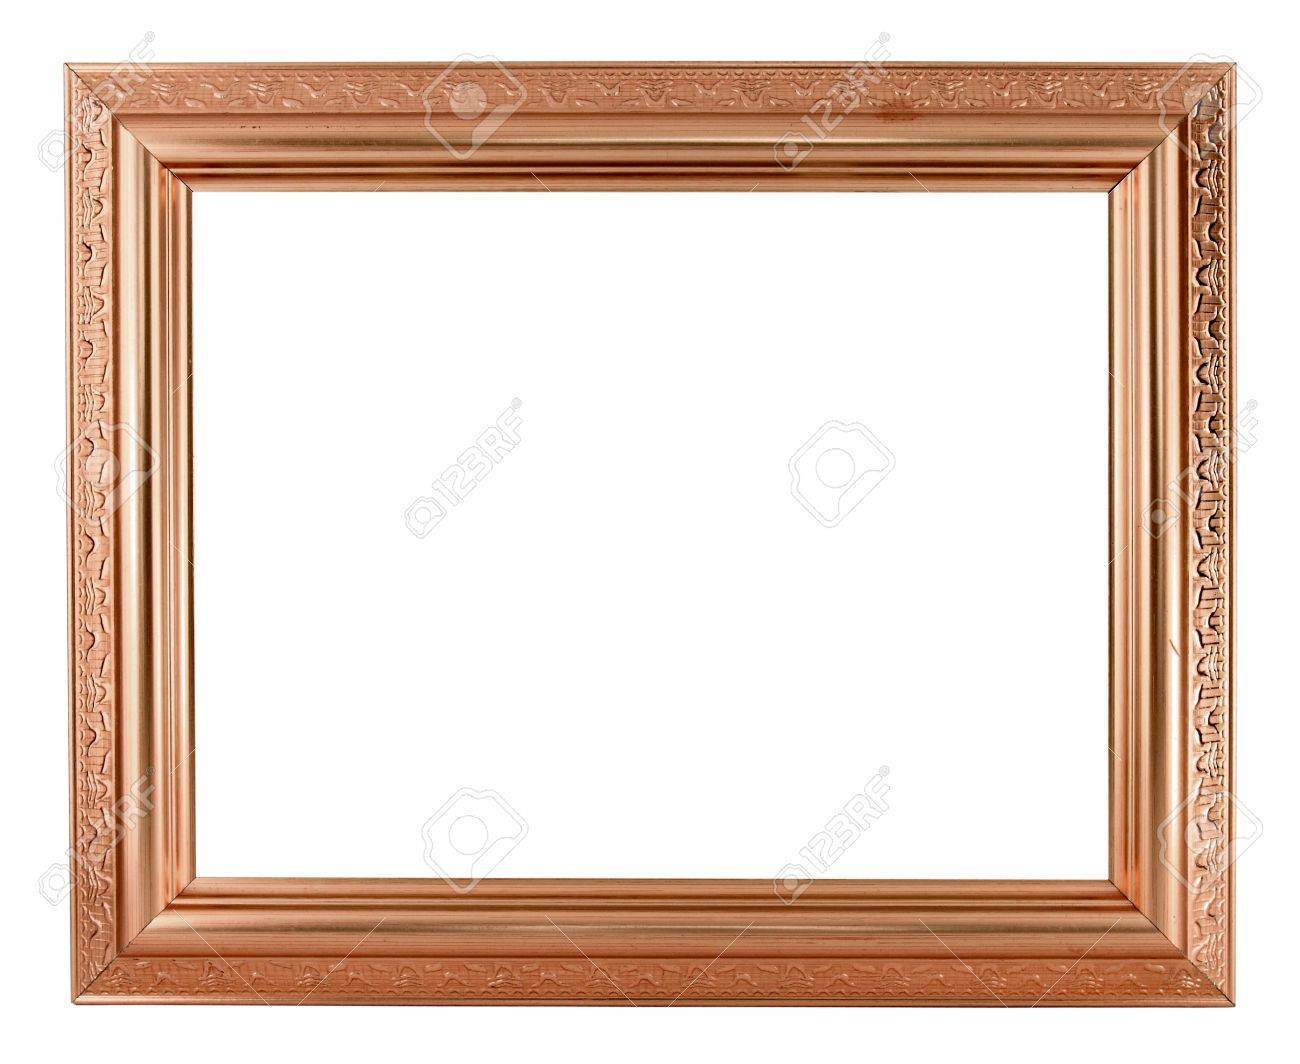 Copper Picture Frame On White Background Stock Photo, Picture And ...